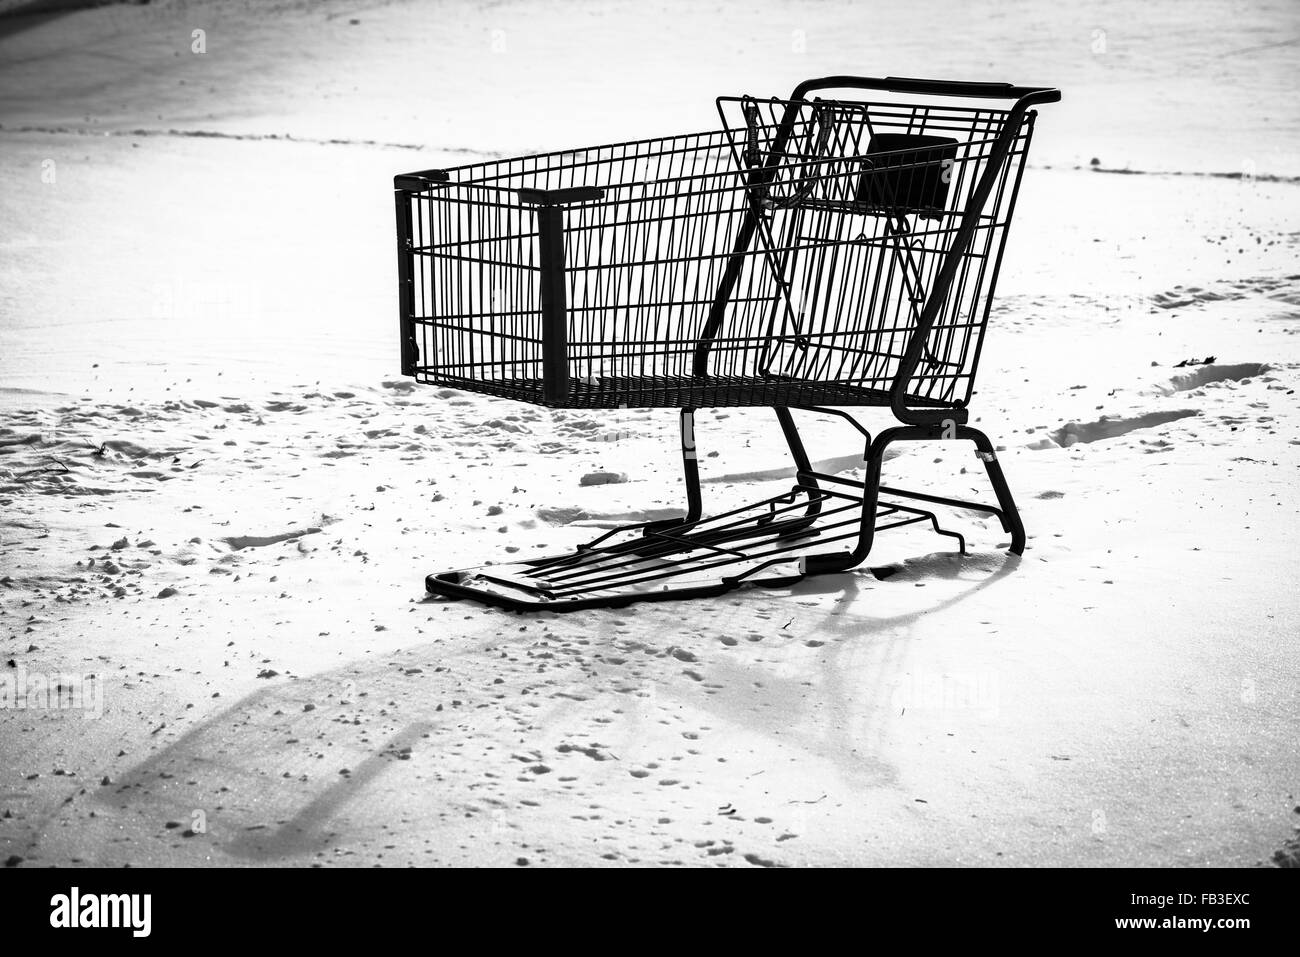 High contrast black and white image of shopping cart abandoned in snow by the shopper. - Stock Image